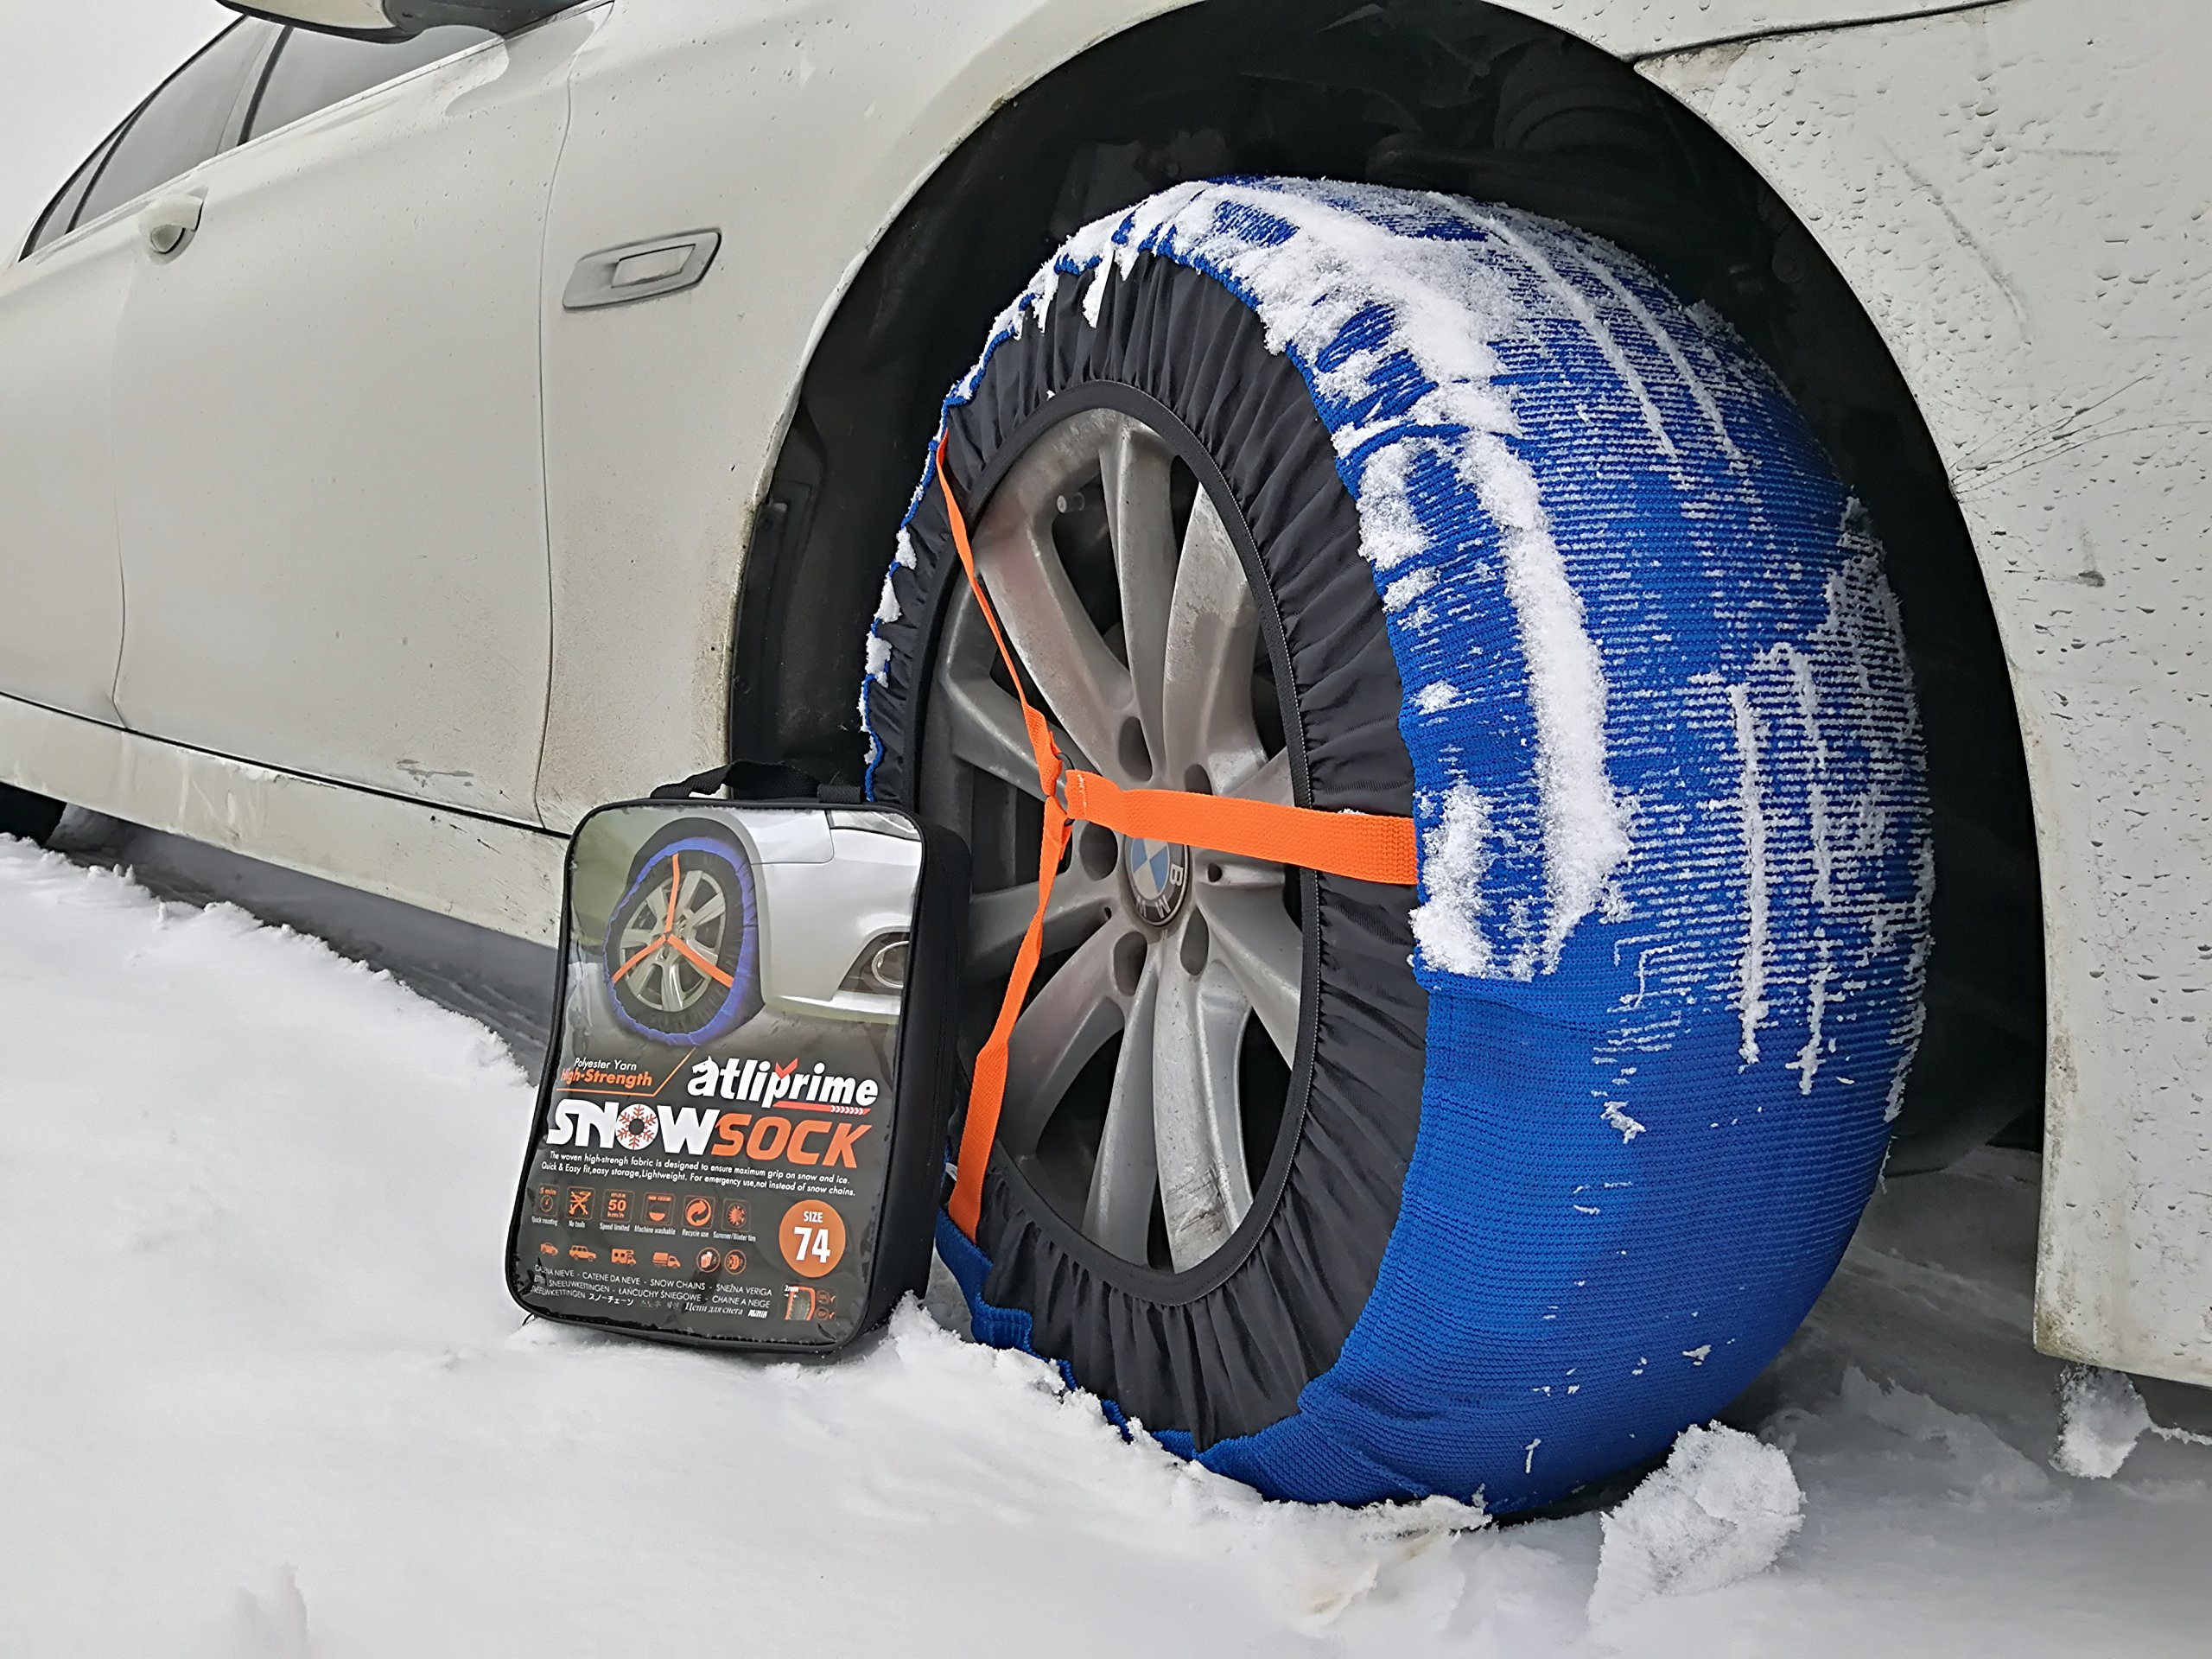 atliprime 2pcs Anti-Skid Safety Ice Mud Tires Snow Chains Auto Snow Chains Fabric Tire Chains Auto Snow Sock on Ice and Snowy Road (AT-SB81) by atliprime